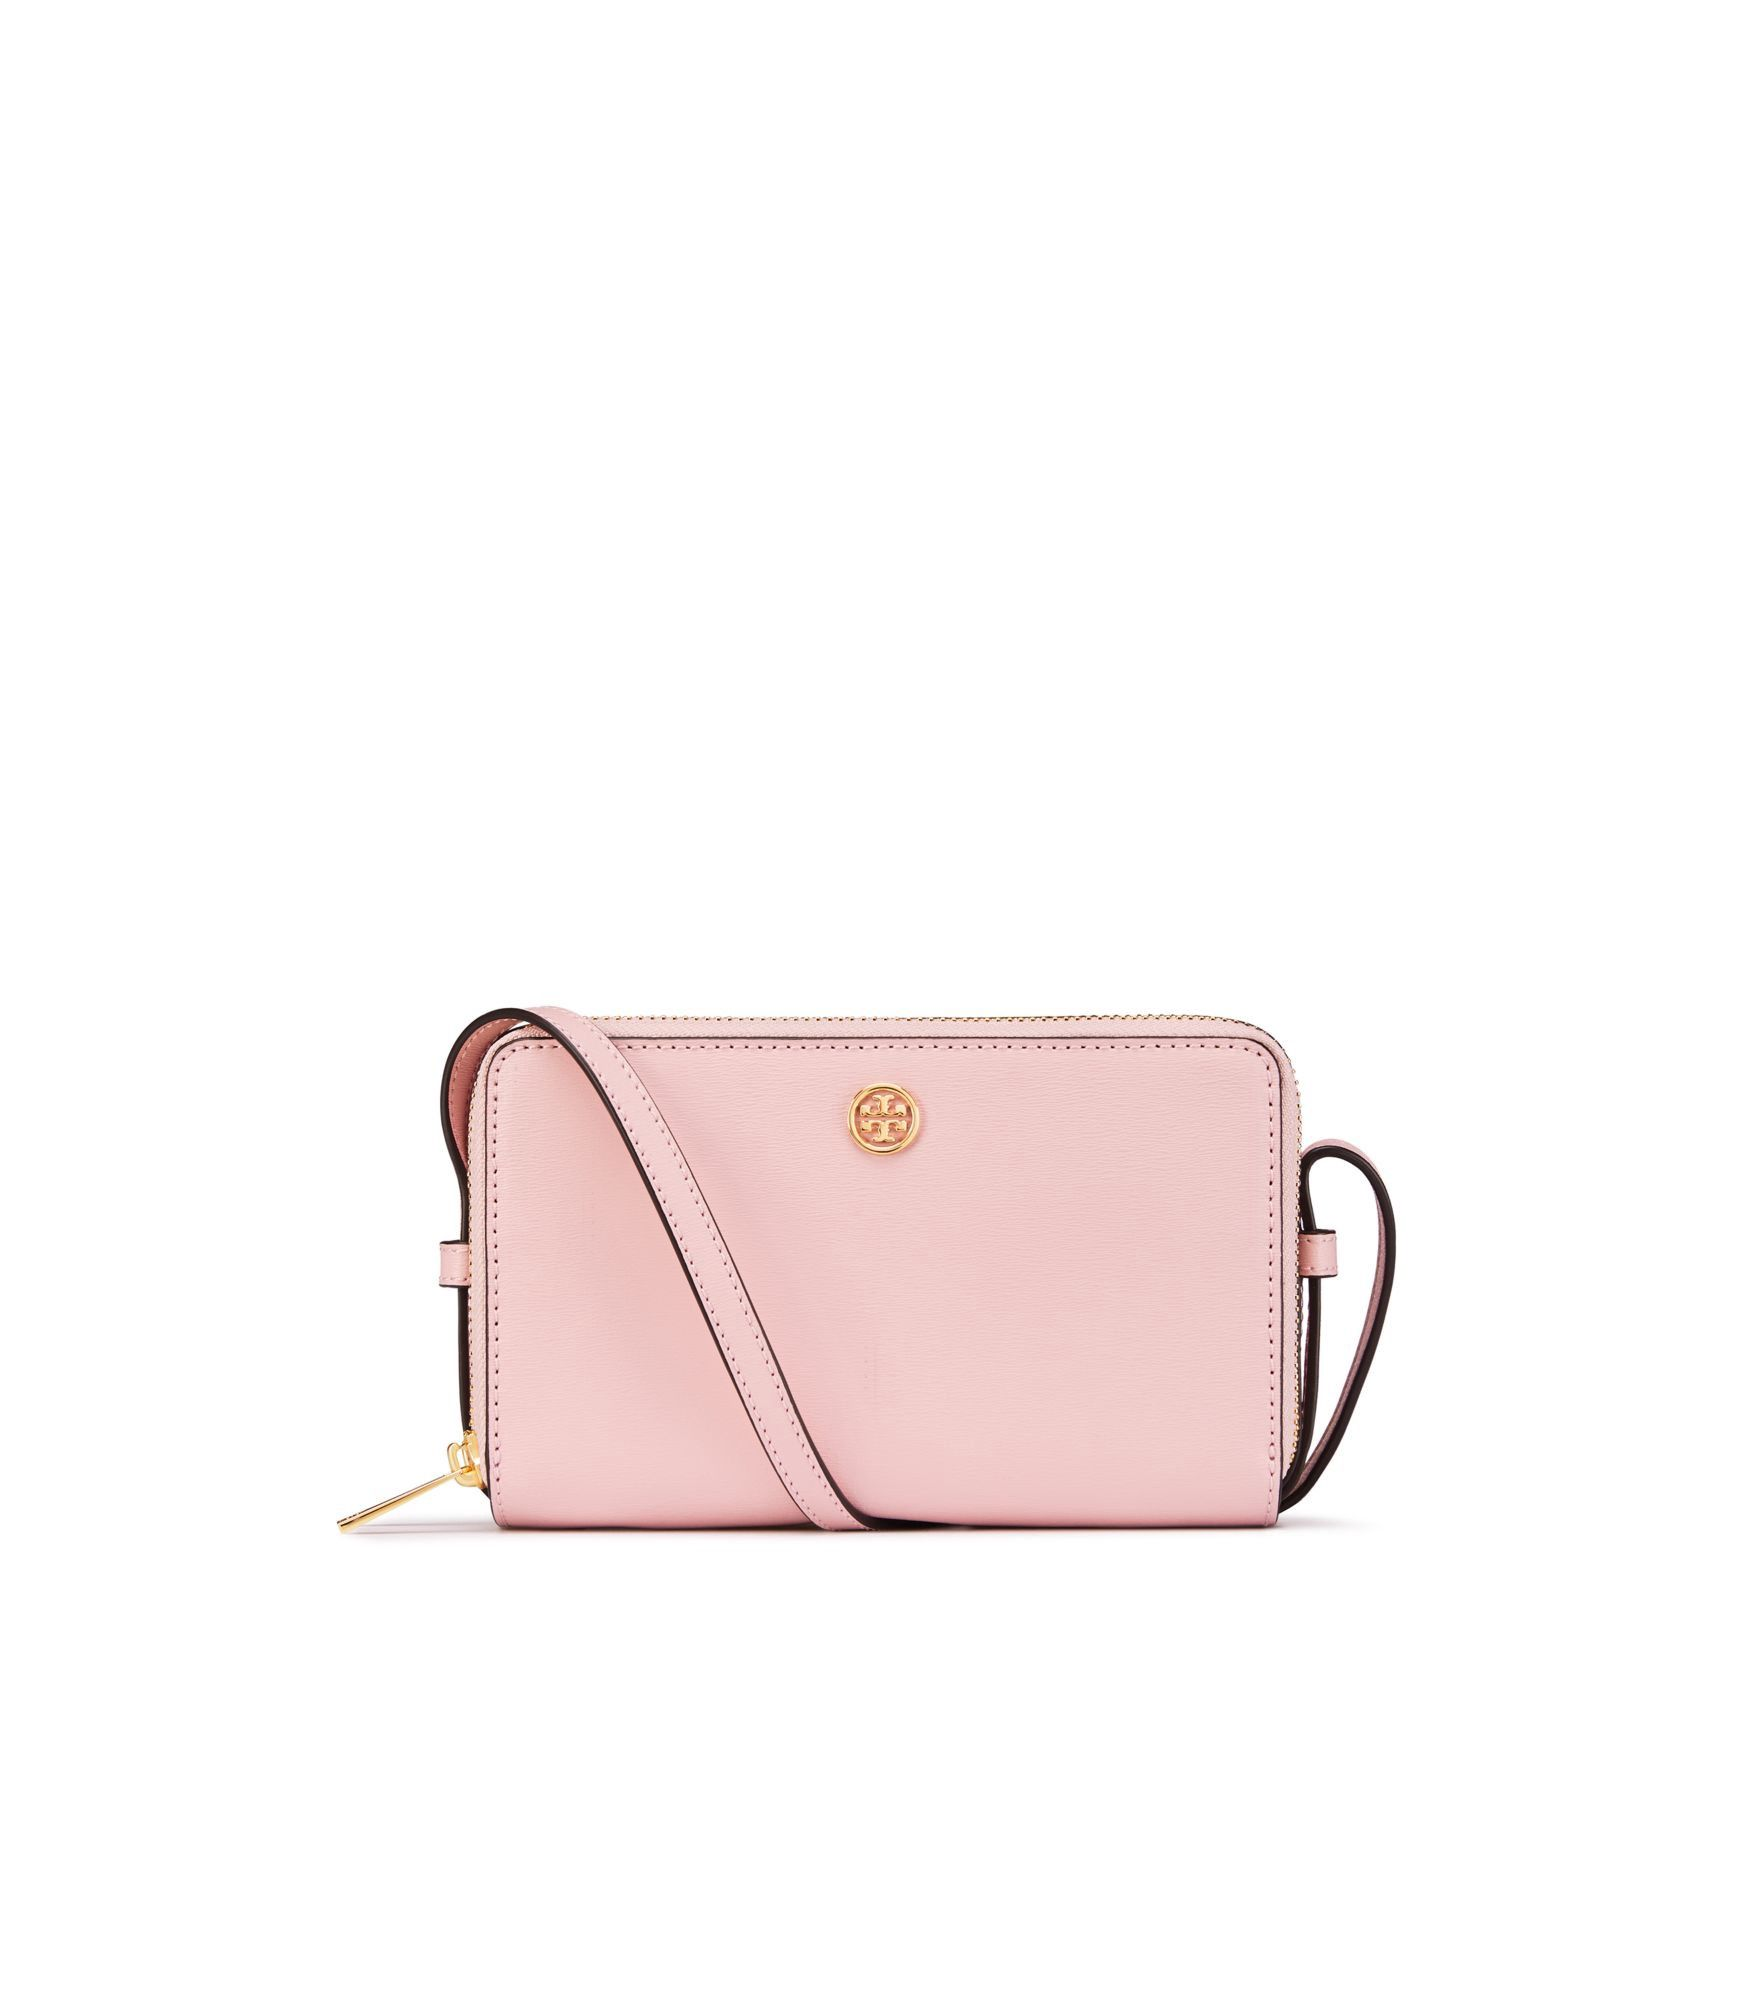 Visit Tory Burch to shop for Parker Double-zip Mini Bag and more Womens  View All. Find designer shoes, handbags, clothing & more of this season's  latest ...